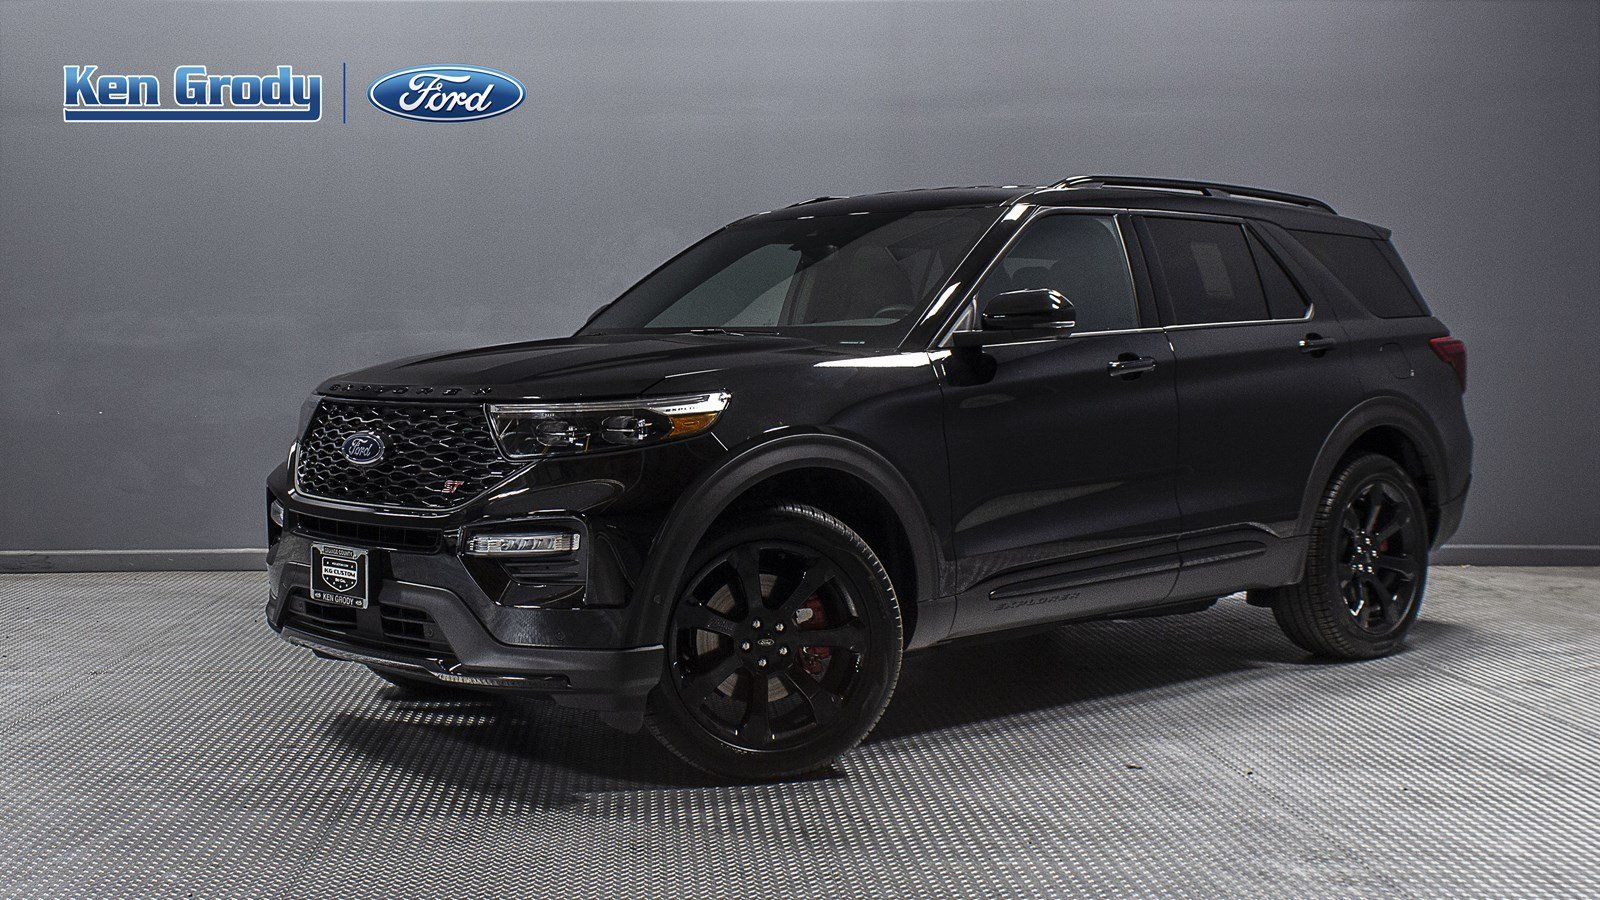 The Best Review 2020 Ford Explorer Sport Black And Images And Description In 2020 2020 Ford Explorer Ford Explorer Ford Flex